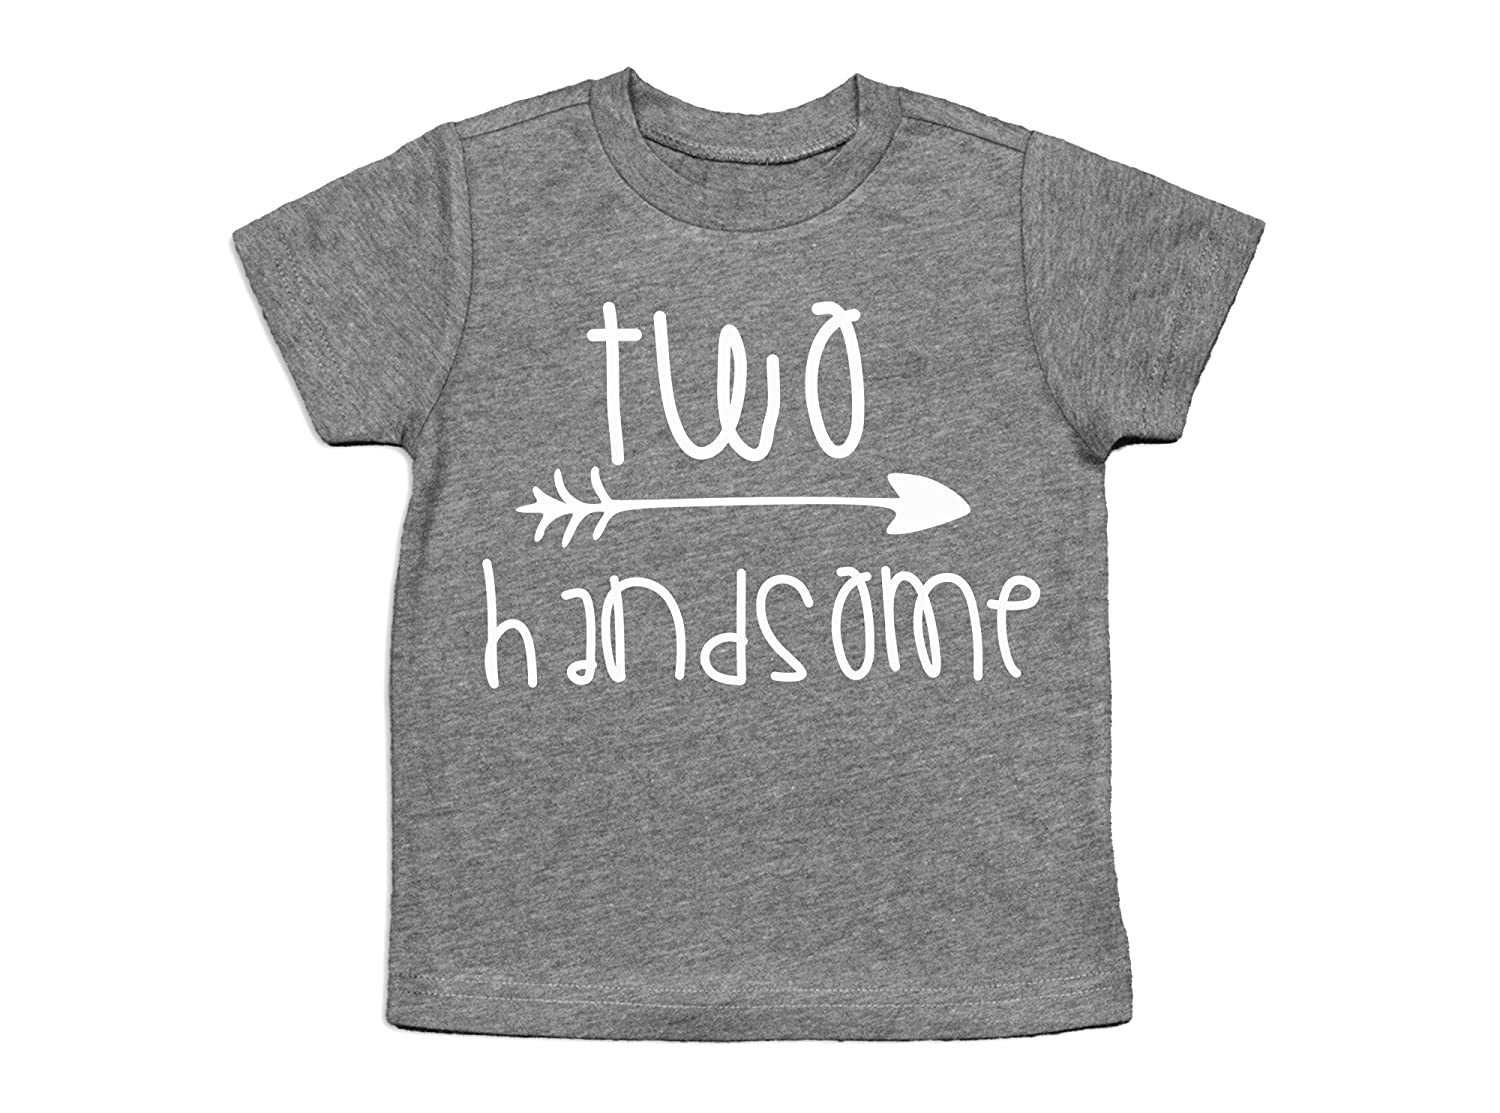 Second Birthday Shirt Two Handsome Shirt 2nd Birthday Tee (Heather Gray, 24 Months) Oliver and Olivia Apparel